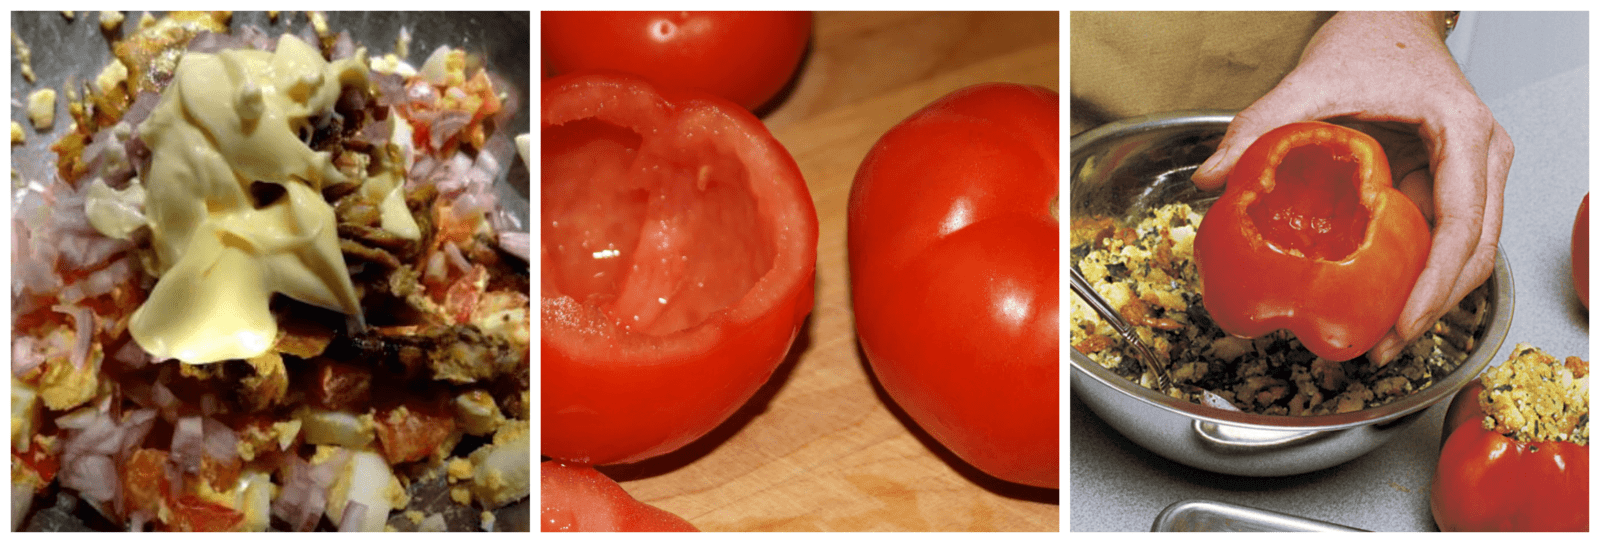 Stuffing tomatoes with the mixture